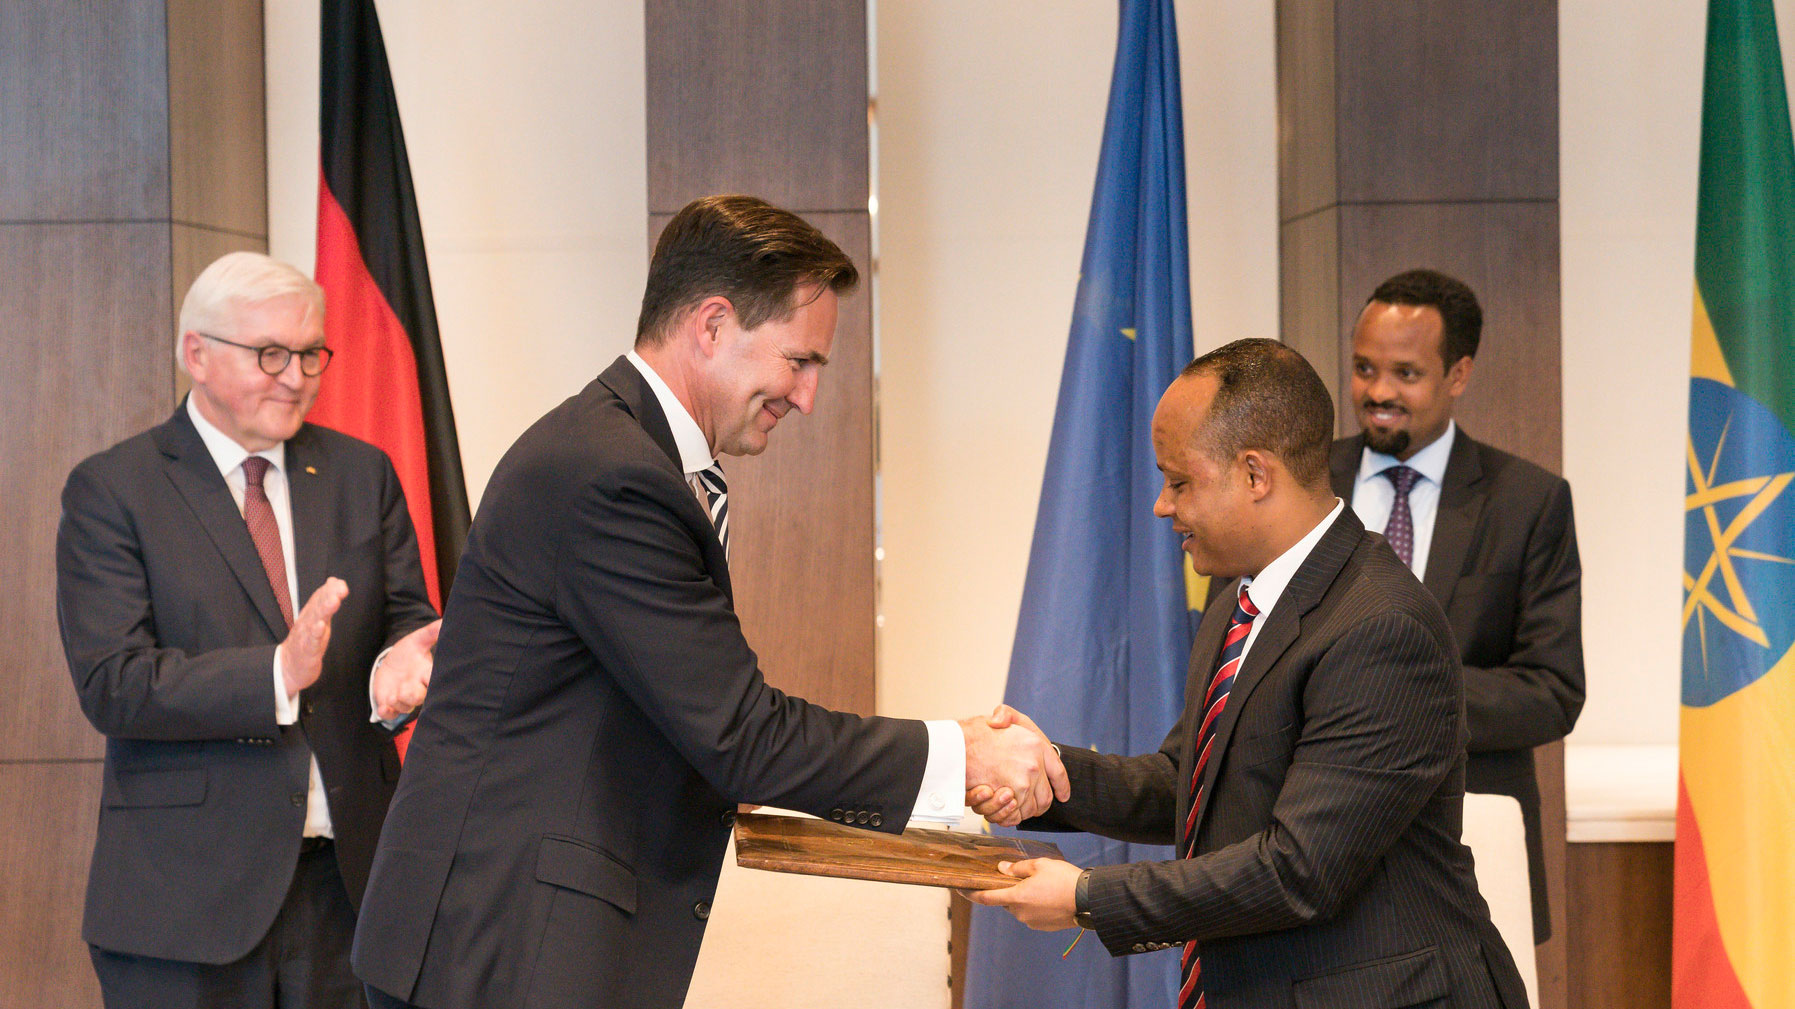 Volkswagen develops automotive industry in Ethiopia